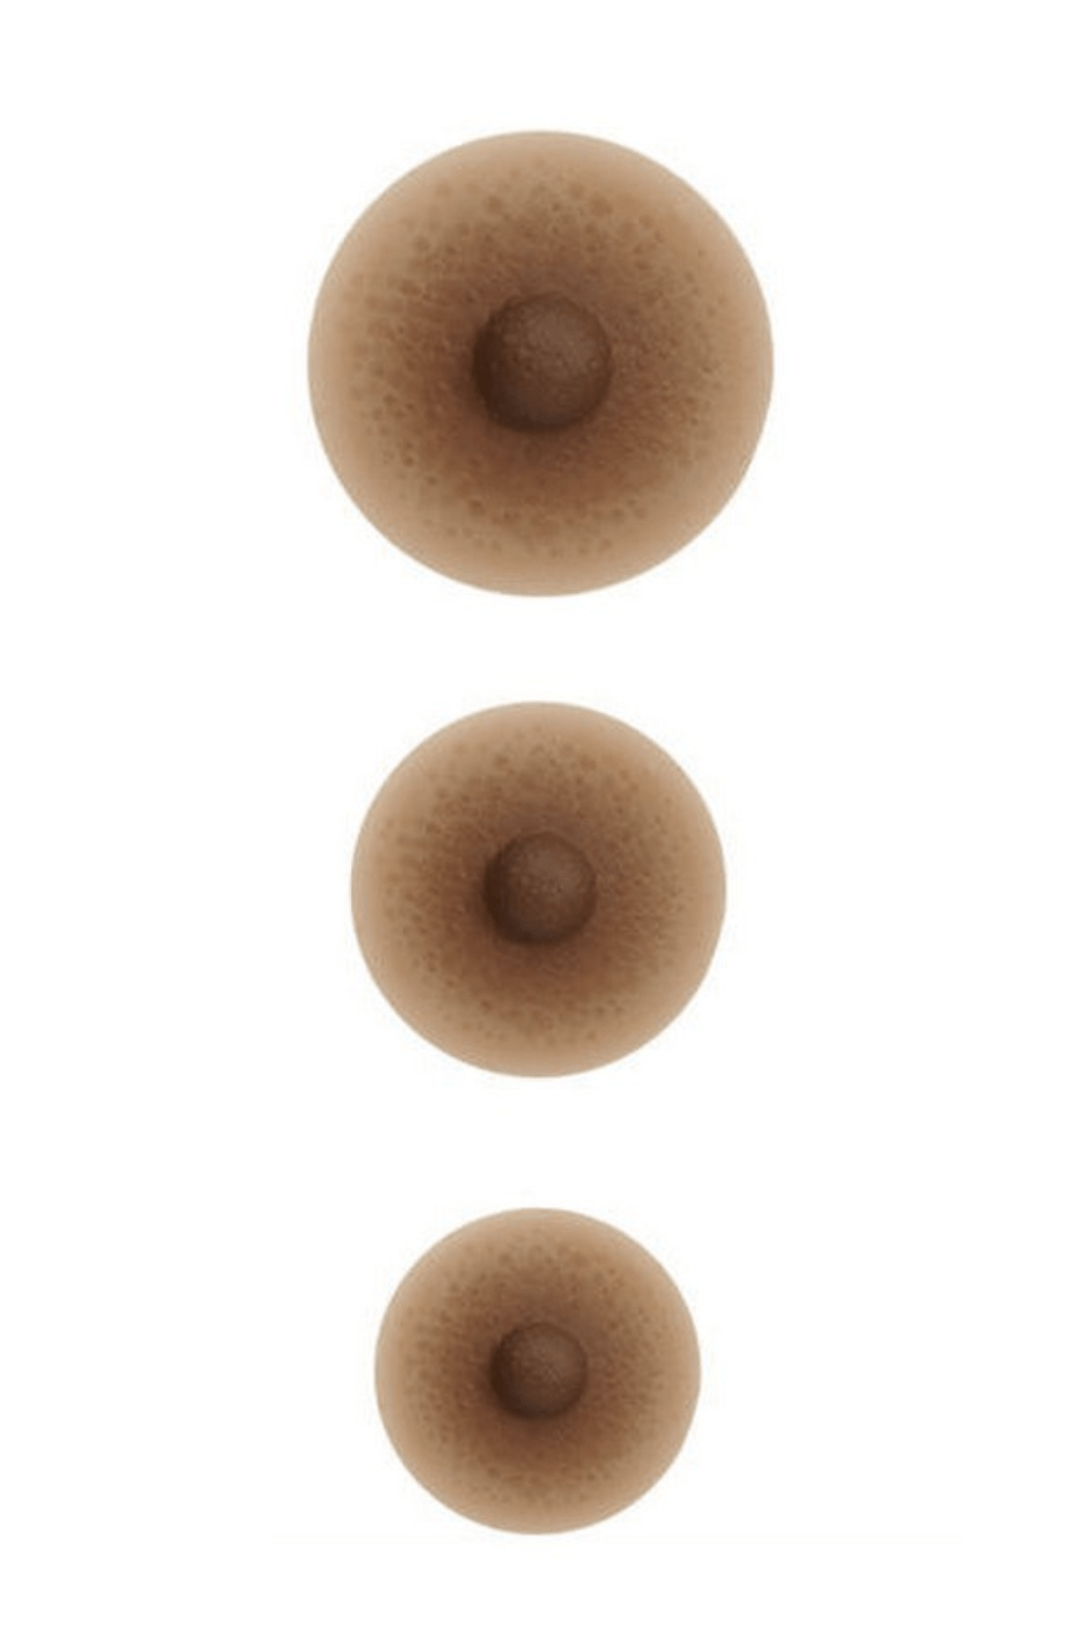 Amoena Adhesive Nipples Post-Breast Surgery Tawny / S Amoena